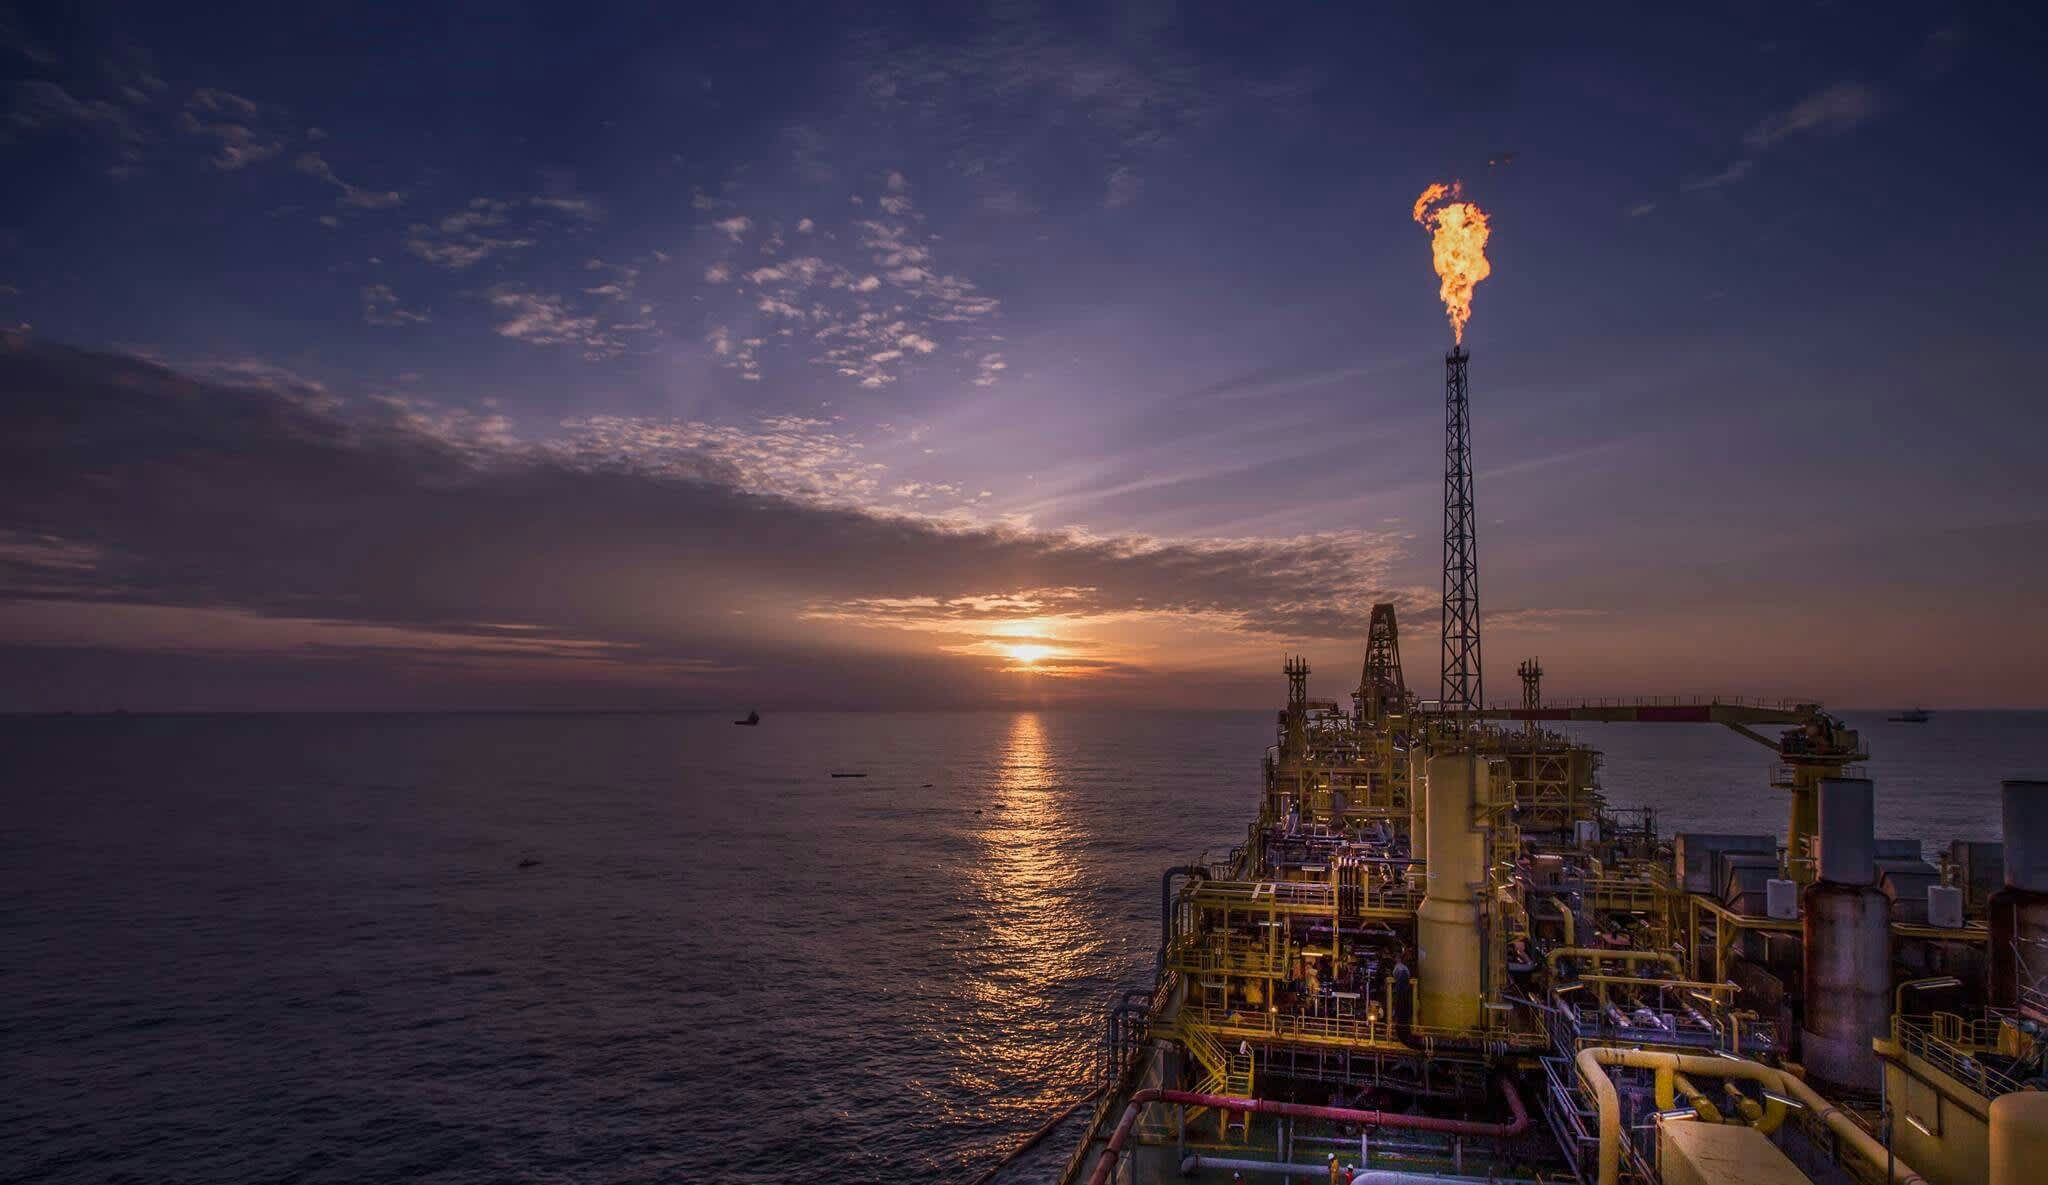 indian gas sector is expected to What's in store for india's oil and gas sector in 2018 by sambit mohanty, senior editor and a corporate sector revival is expected to aid india's gdp growth.